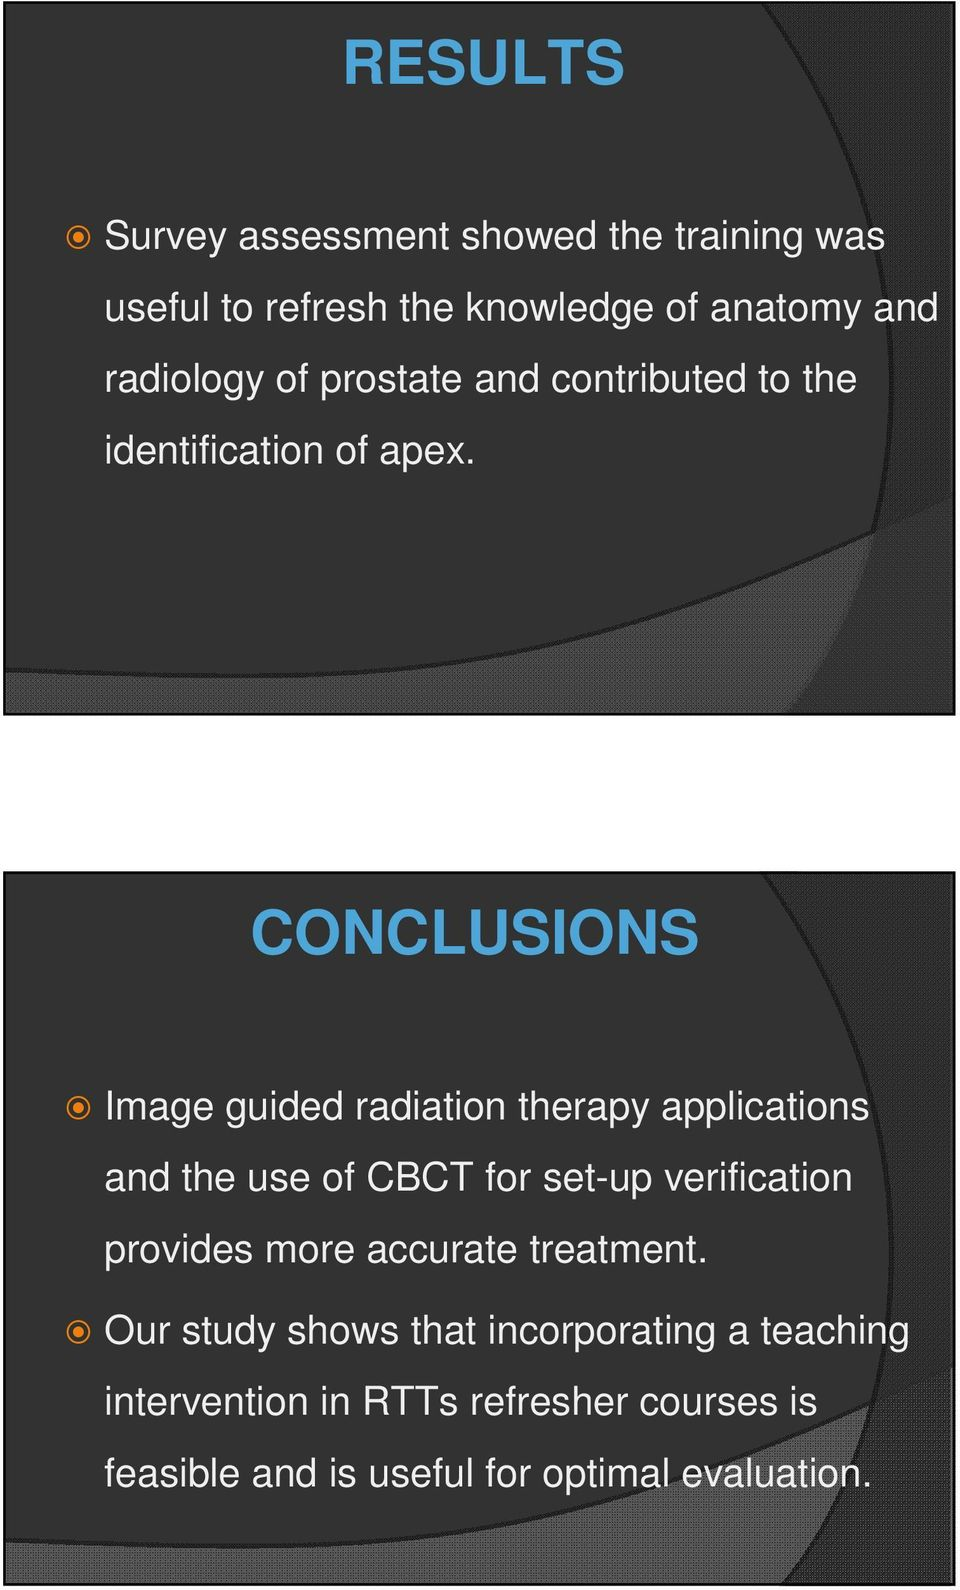 CONCLUSIONS Image guided radiation therapy applications and the use of CBCT for set-up verification provides